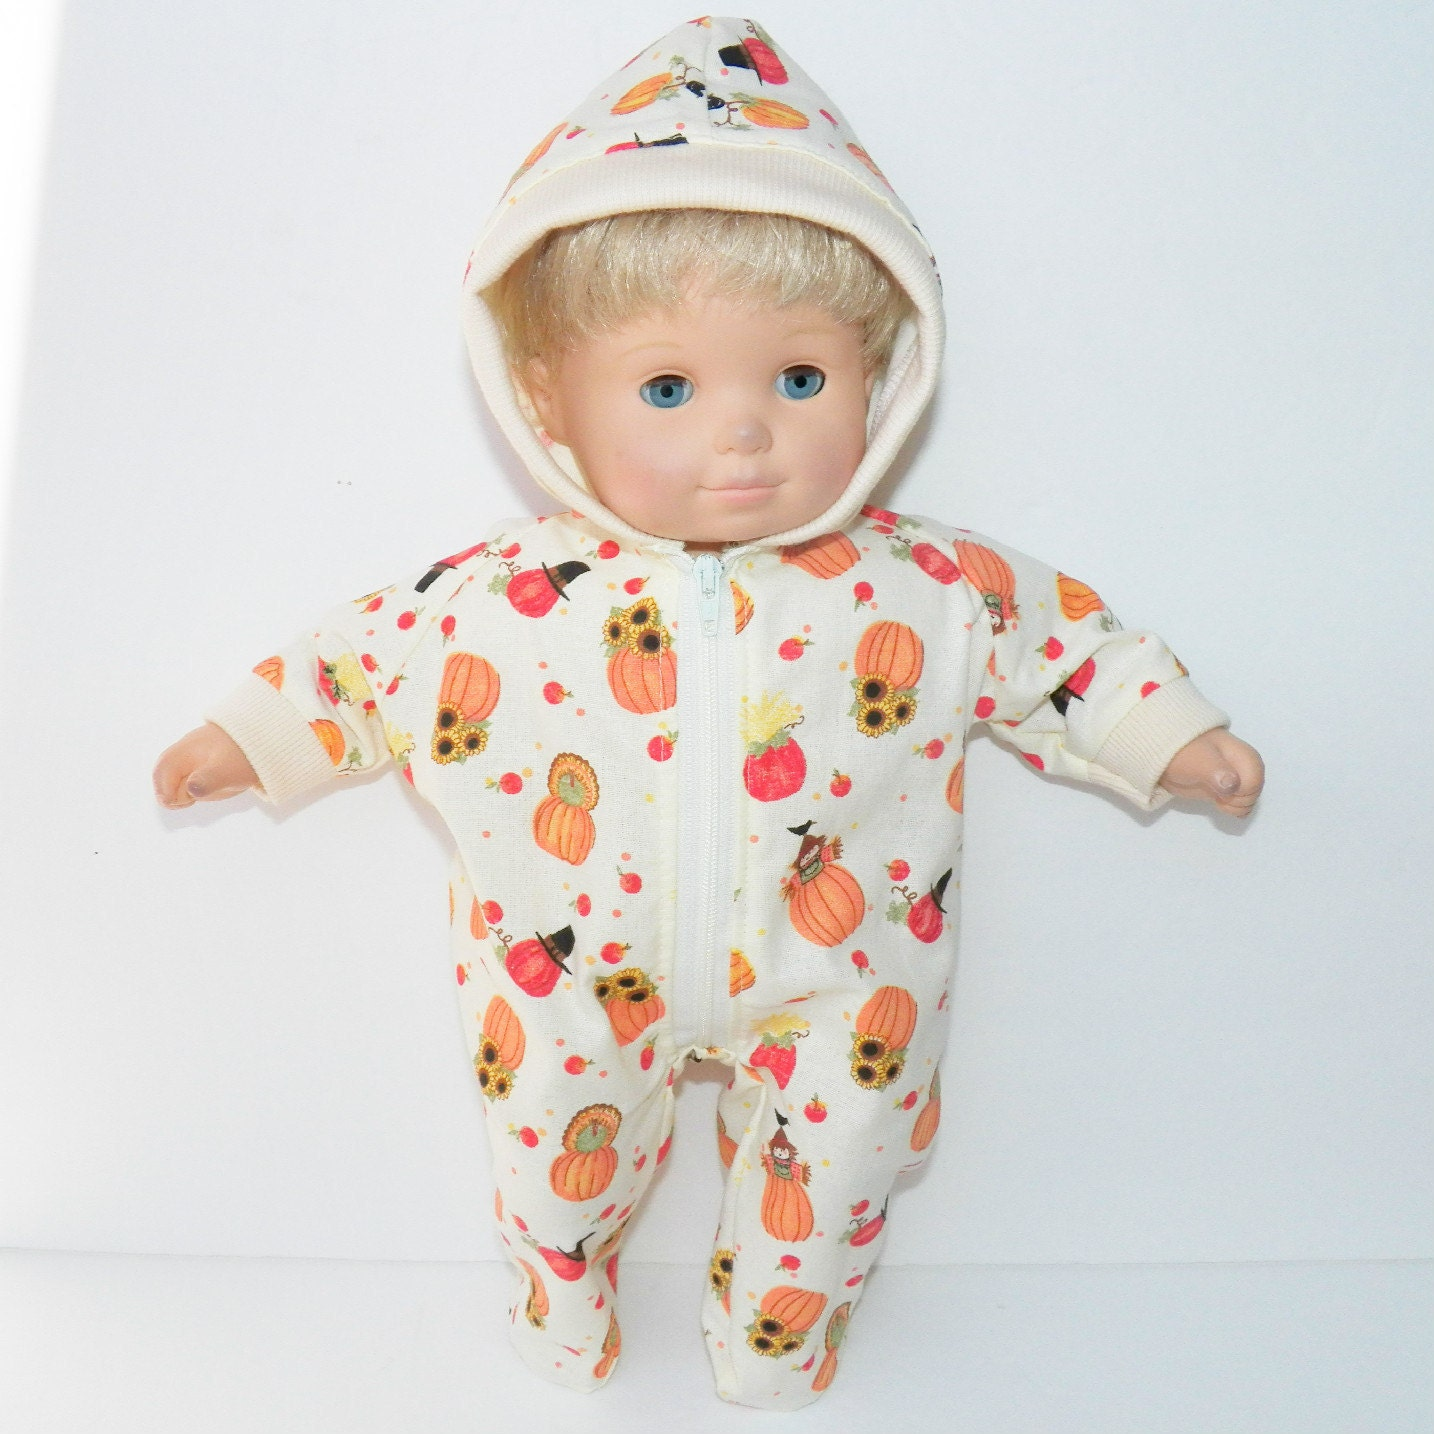 Bitty Baby Clothesboy 15 Inch Bitty Baby Clothes 2 Piece Etsy